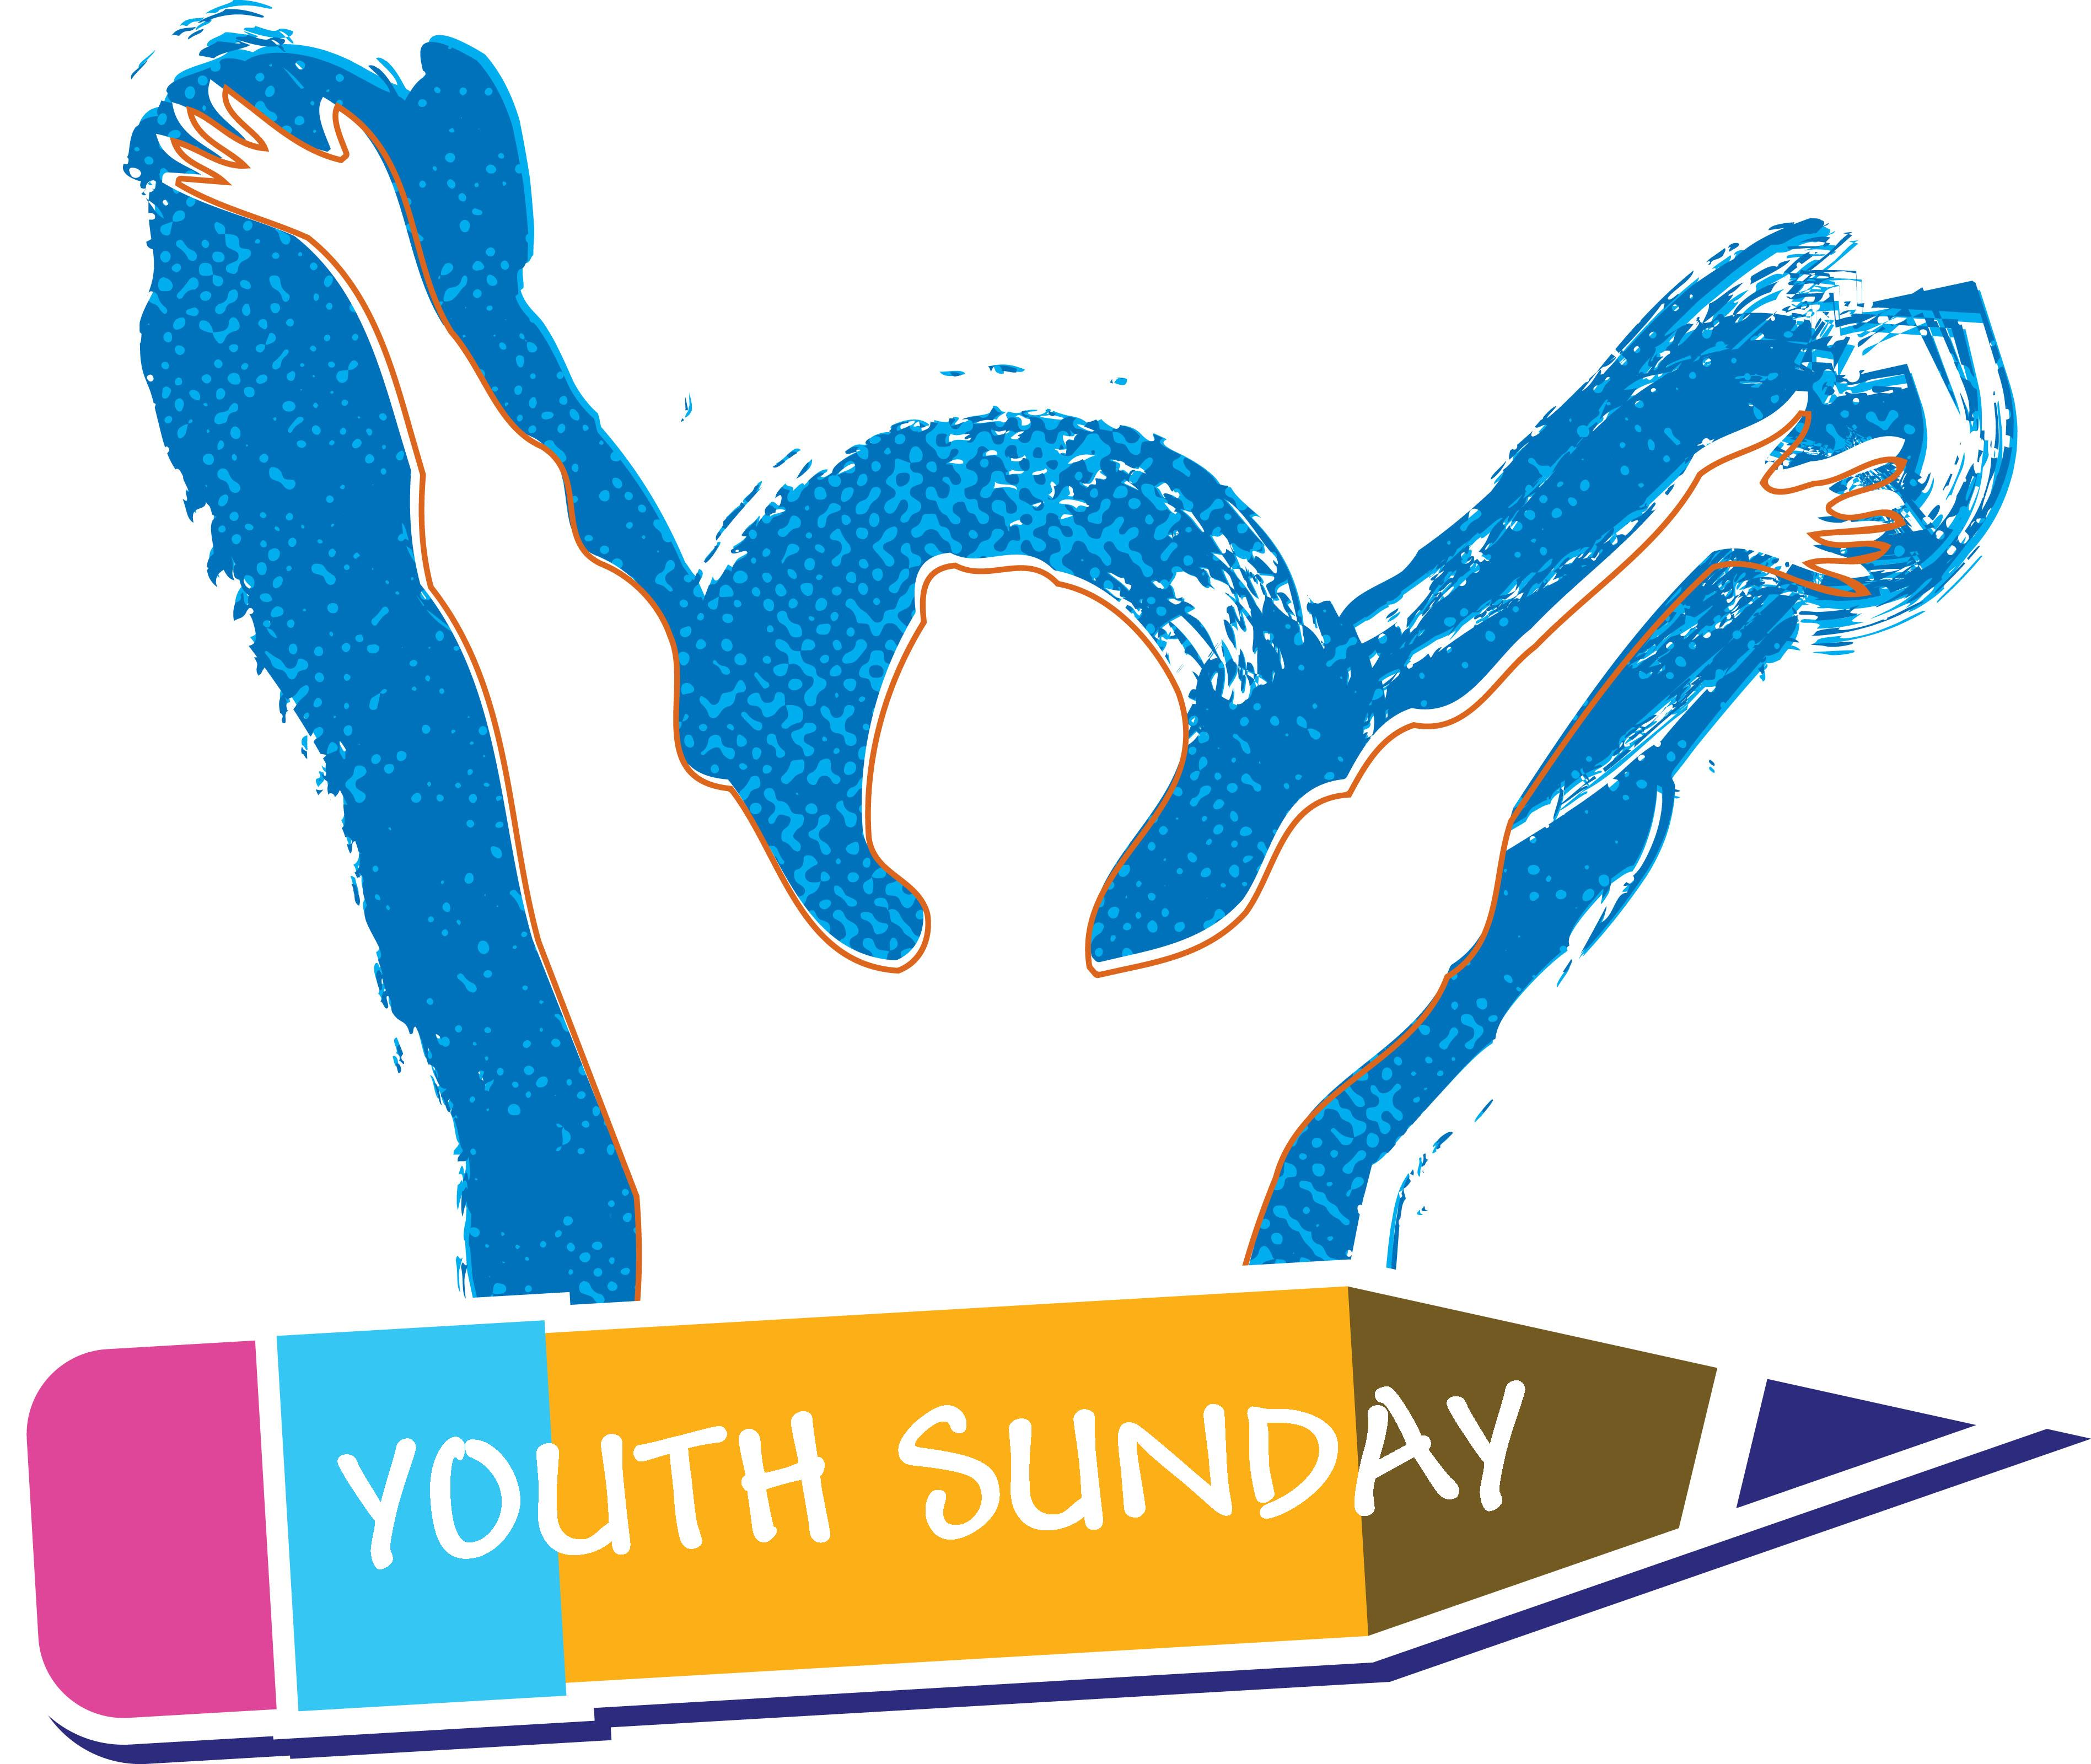 Youth Sunday.